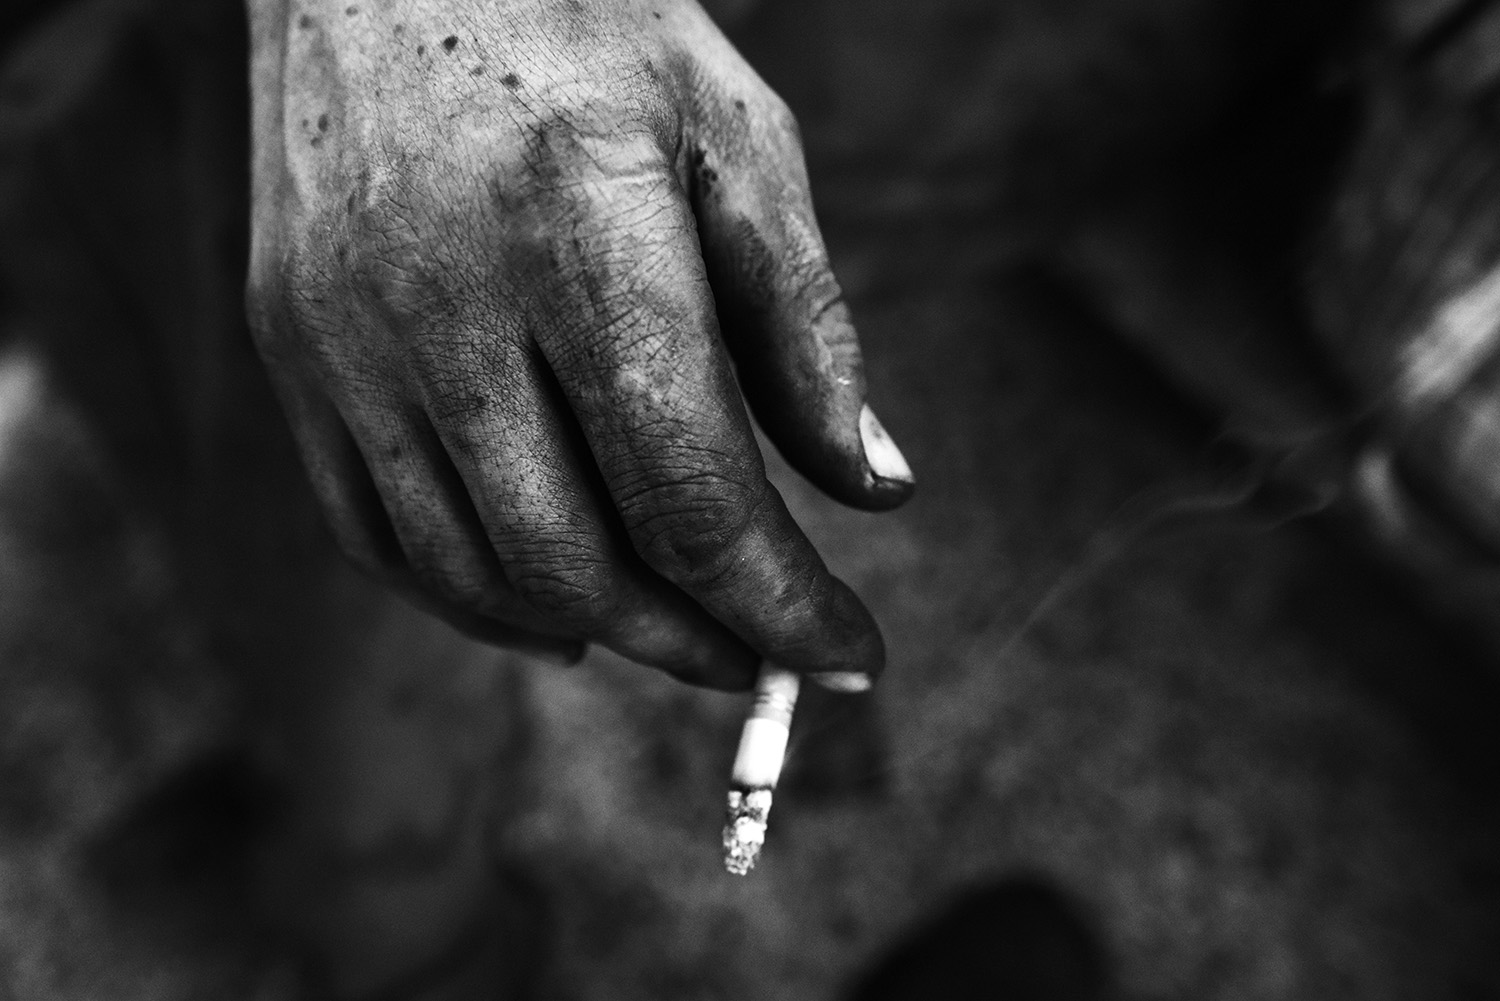 Smoking in the coal mine is strictly forbidden, most of the coal miners on arriving at the locker room light a cigar. That is usually the first thing they doafter exhausting shifts.